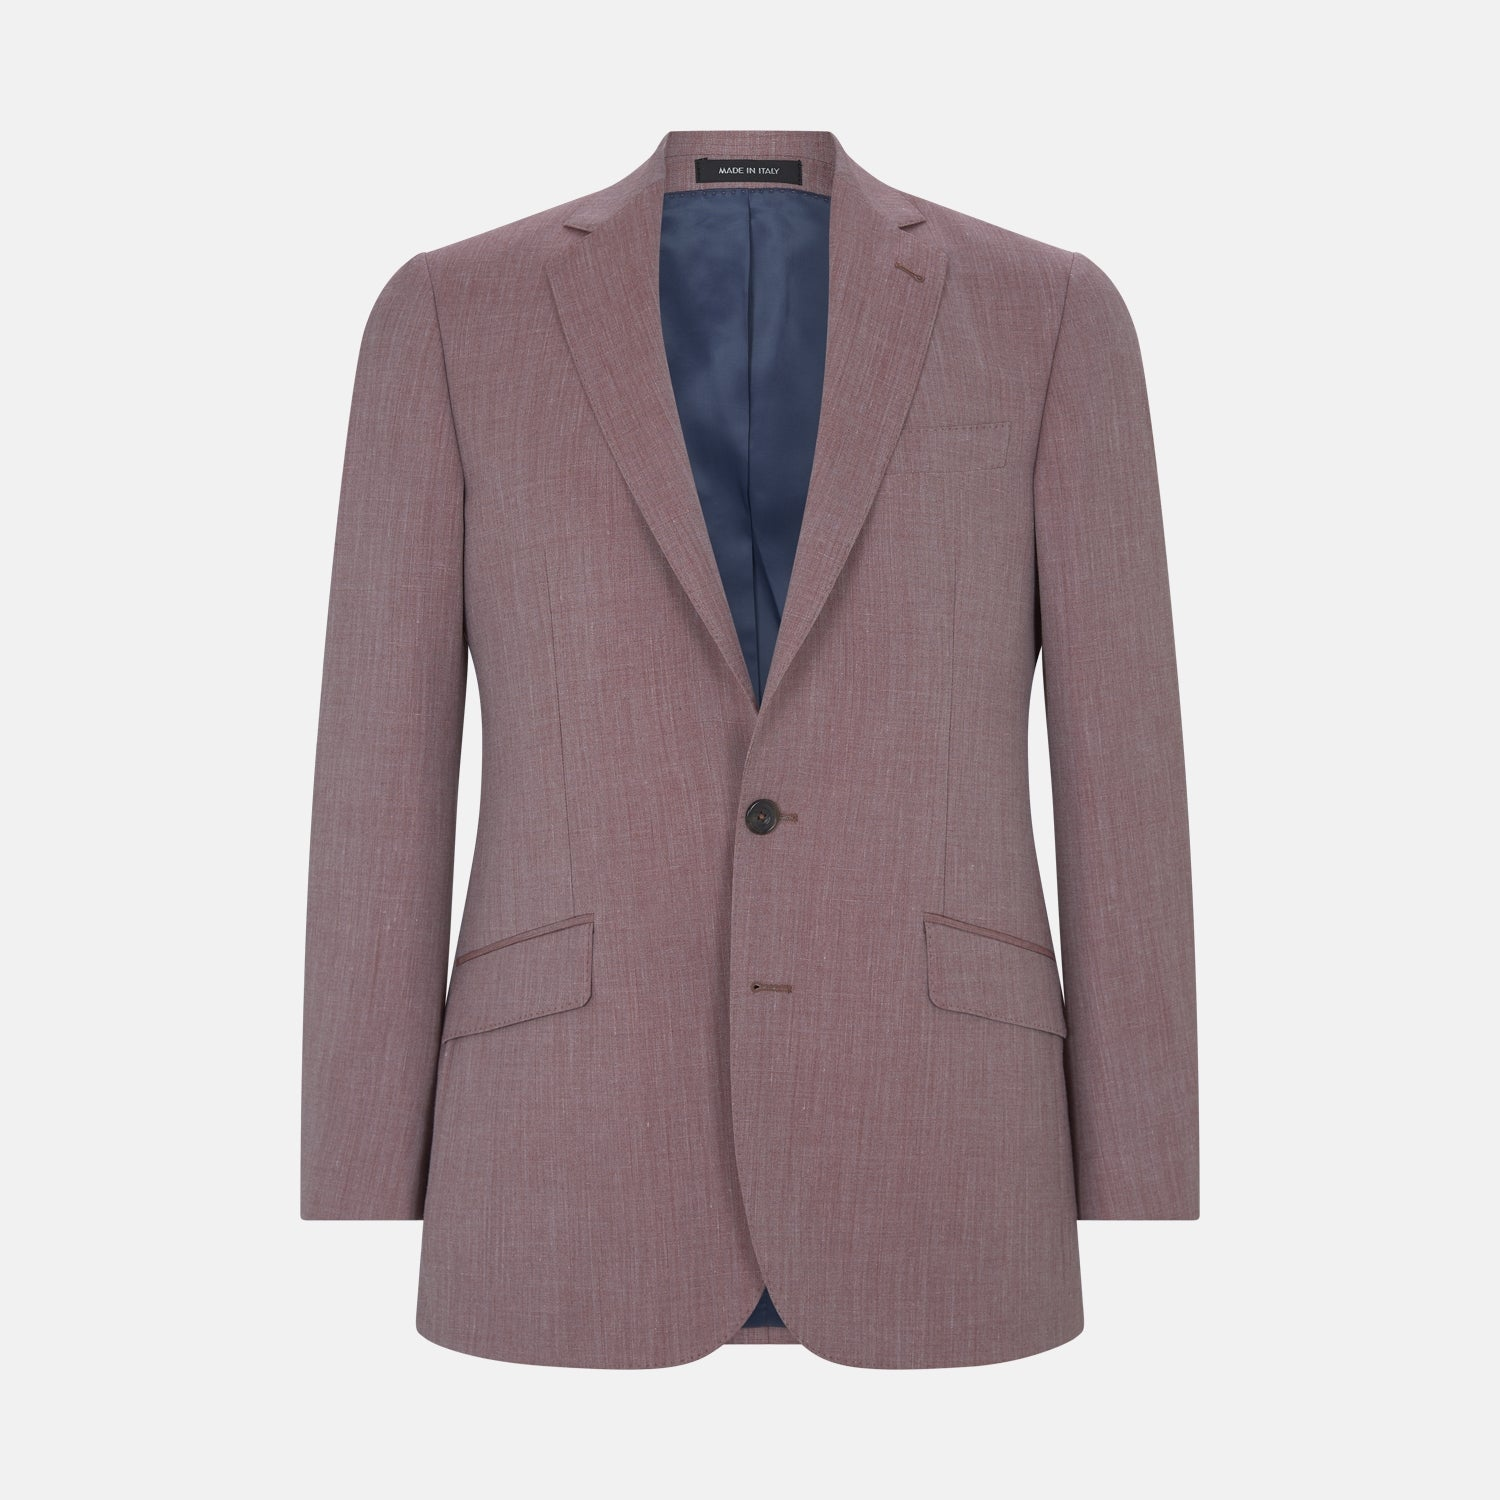 Benedict Dusty Pink Linen Blend Jacket